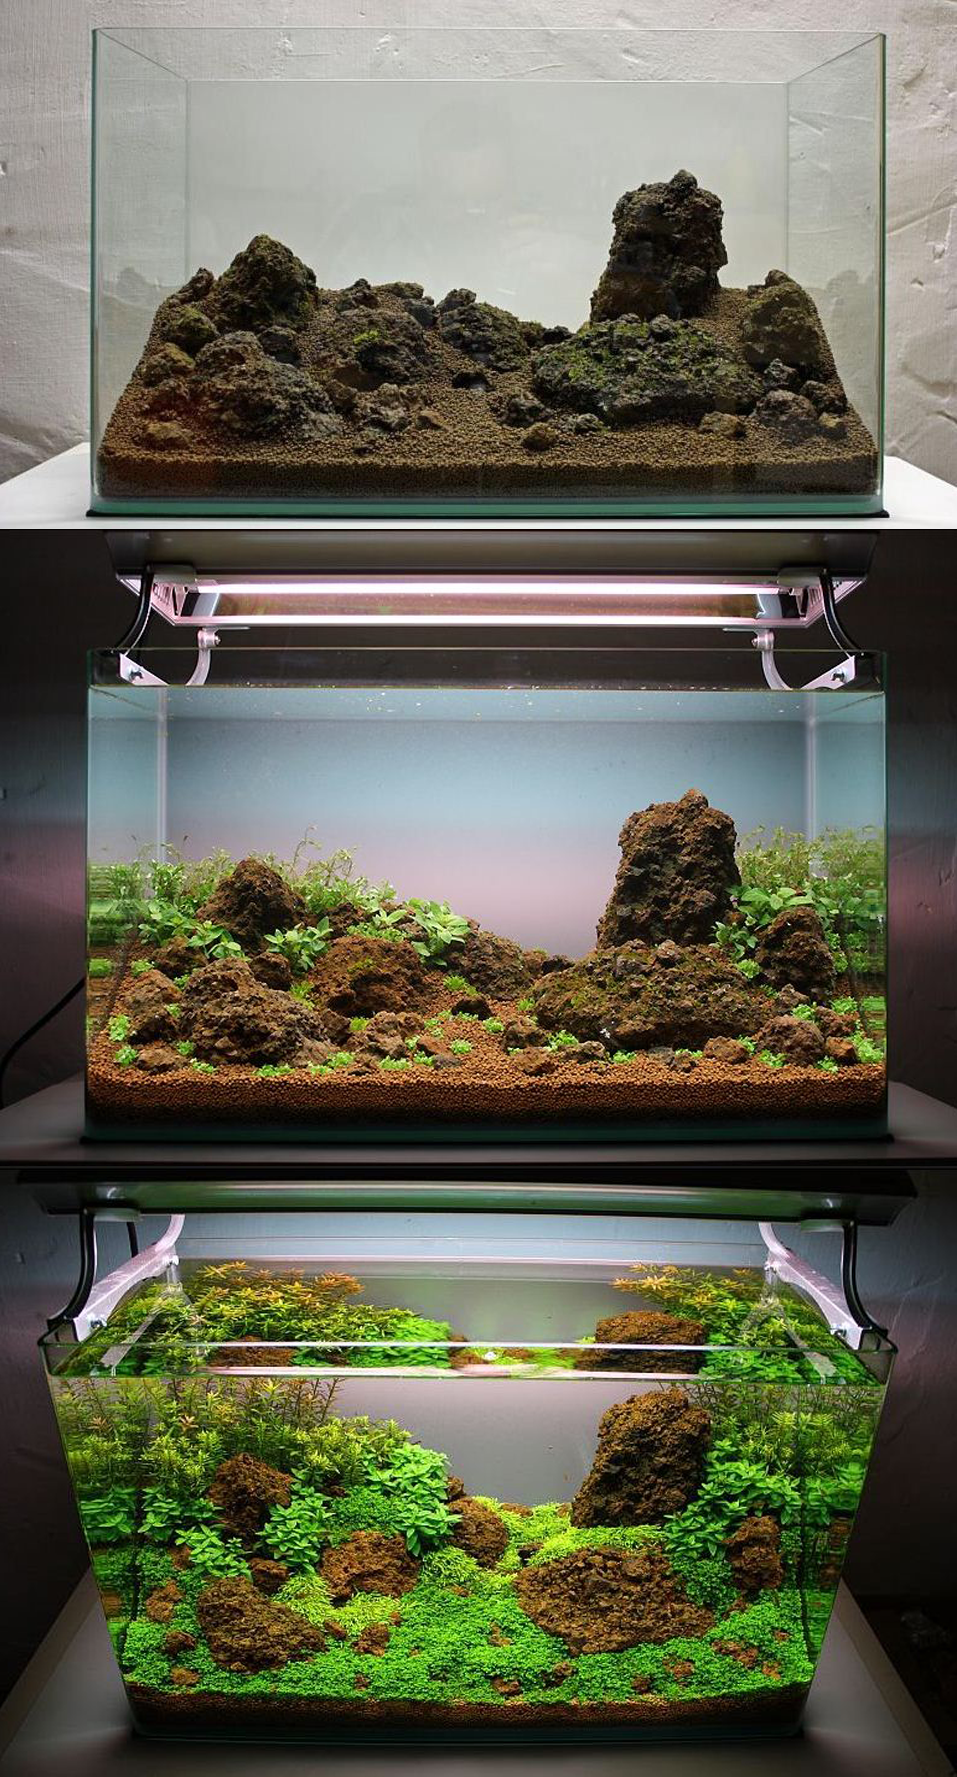 Aquascape Mini Sederhana : aquascape, sederhana, Membuat, Aquascape, Sederhana